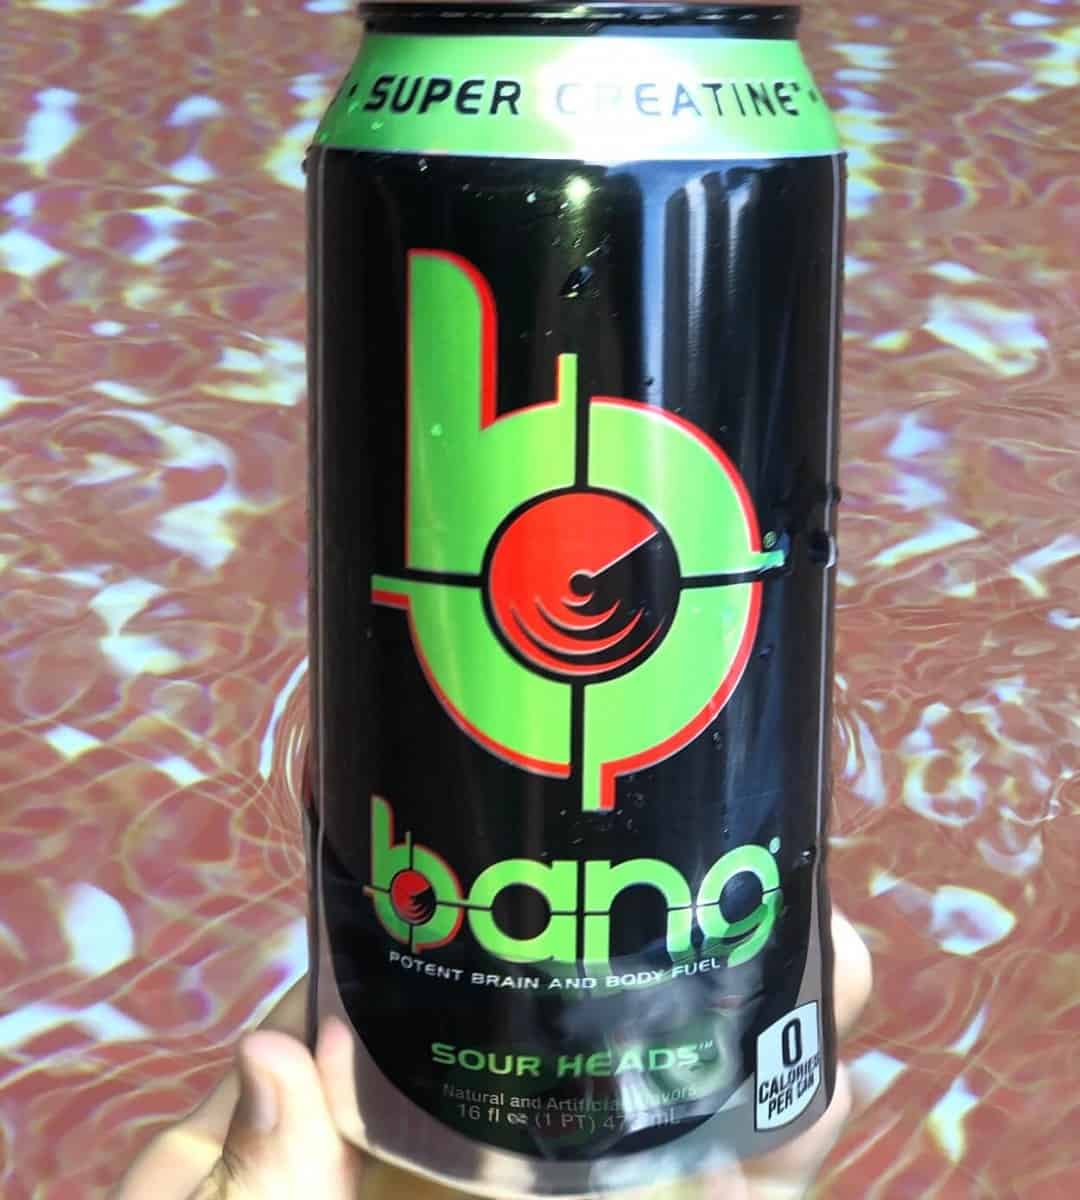 Bang Energy Drink Sour Heads Flavor